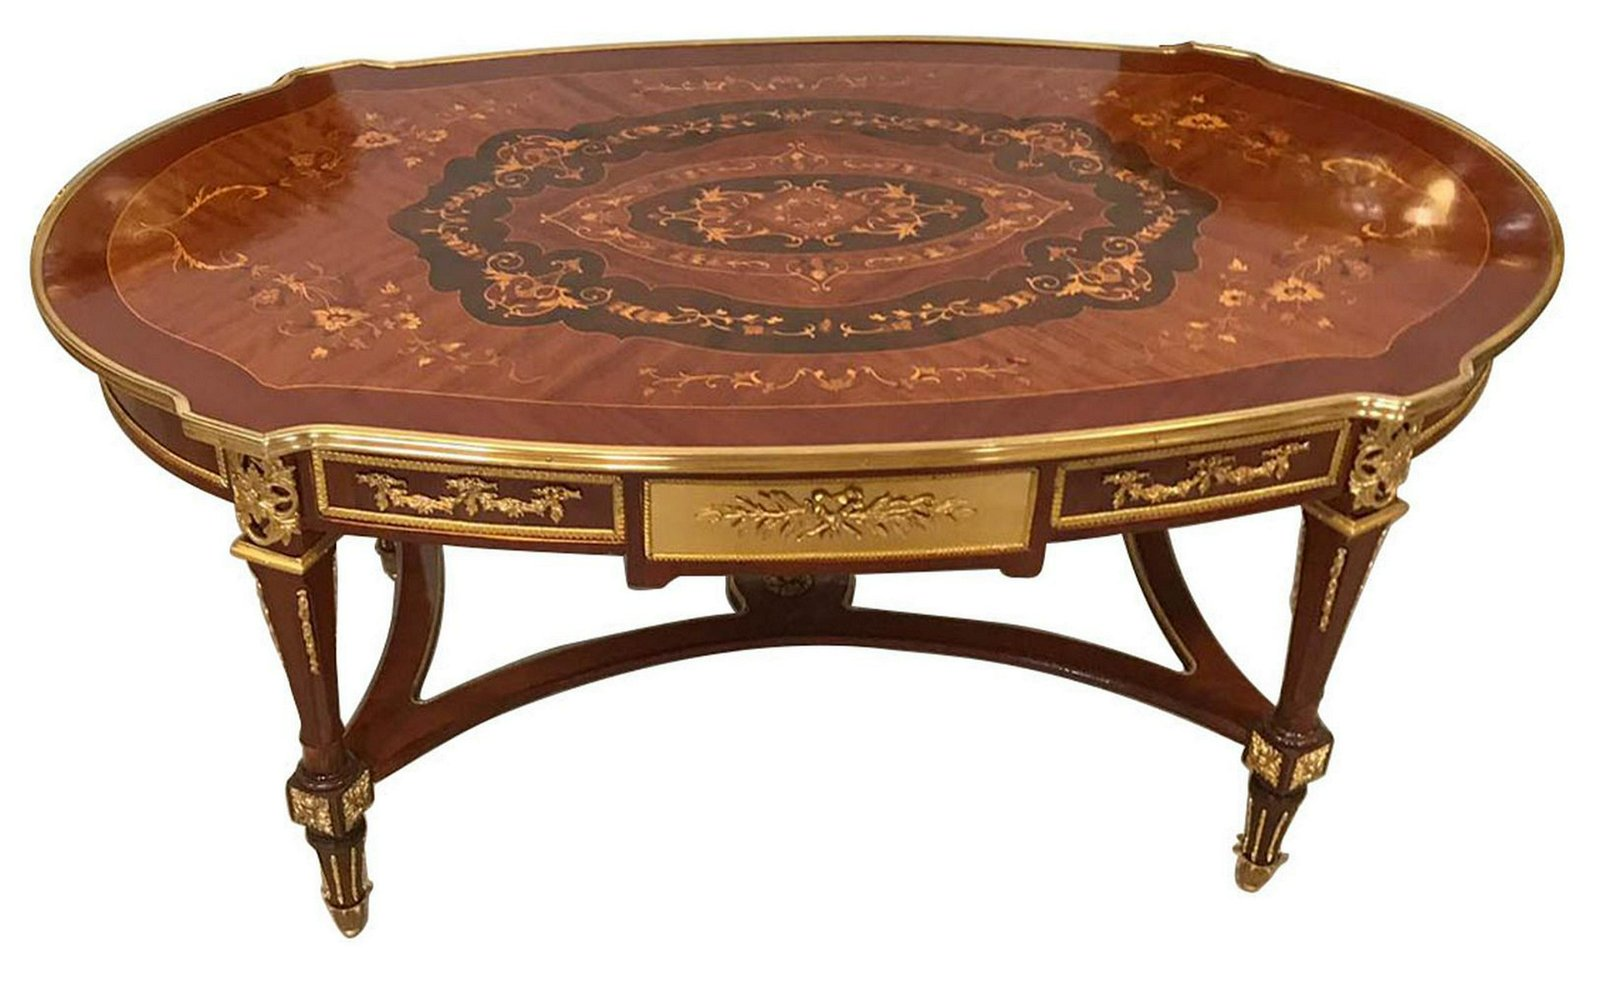 Louis XV salon table